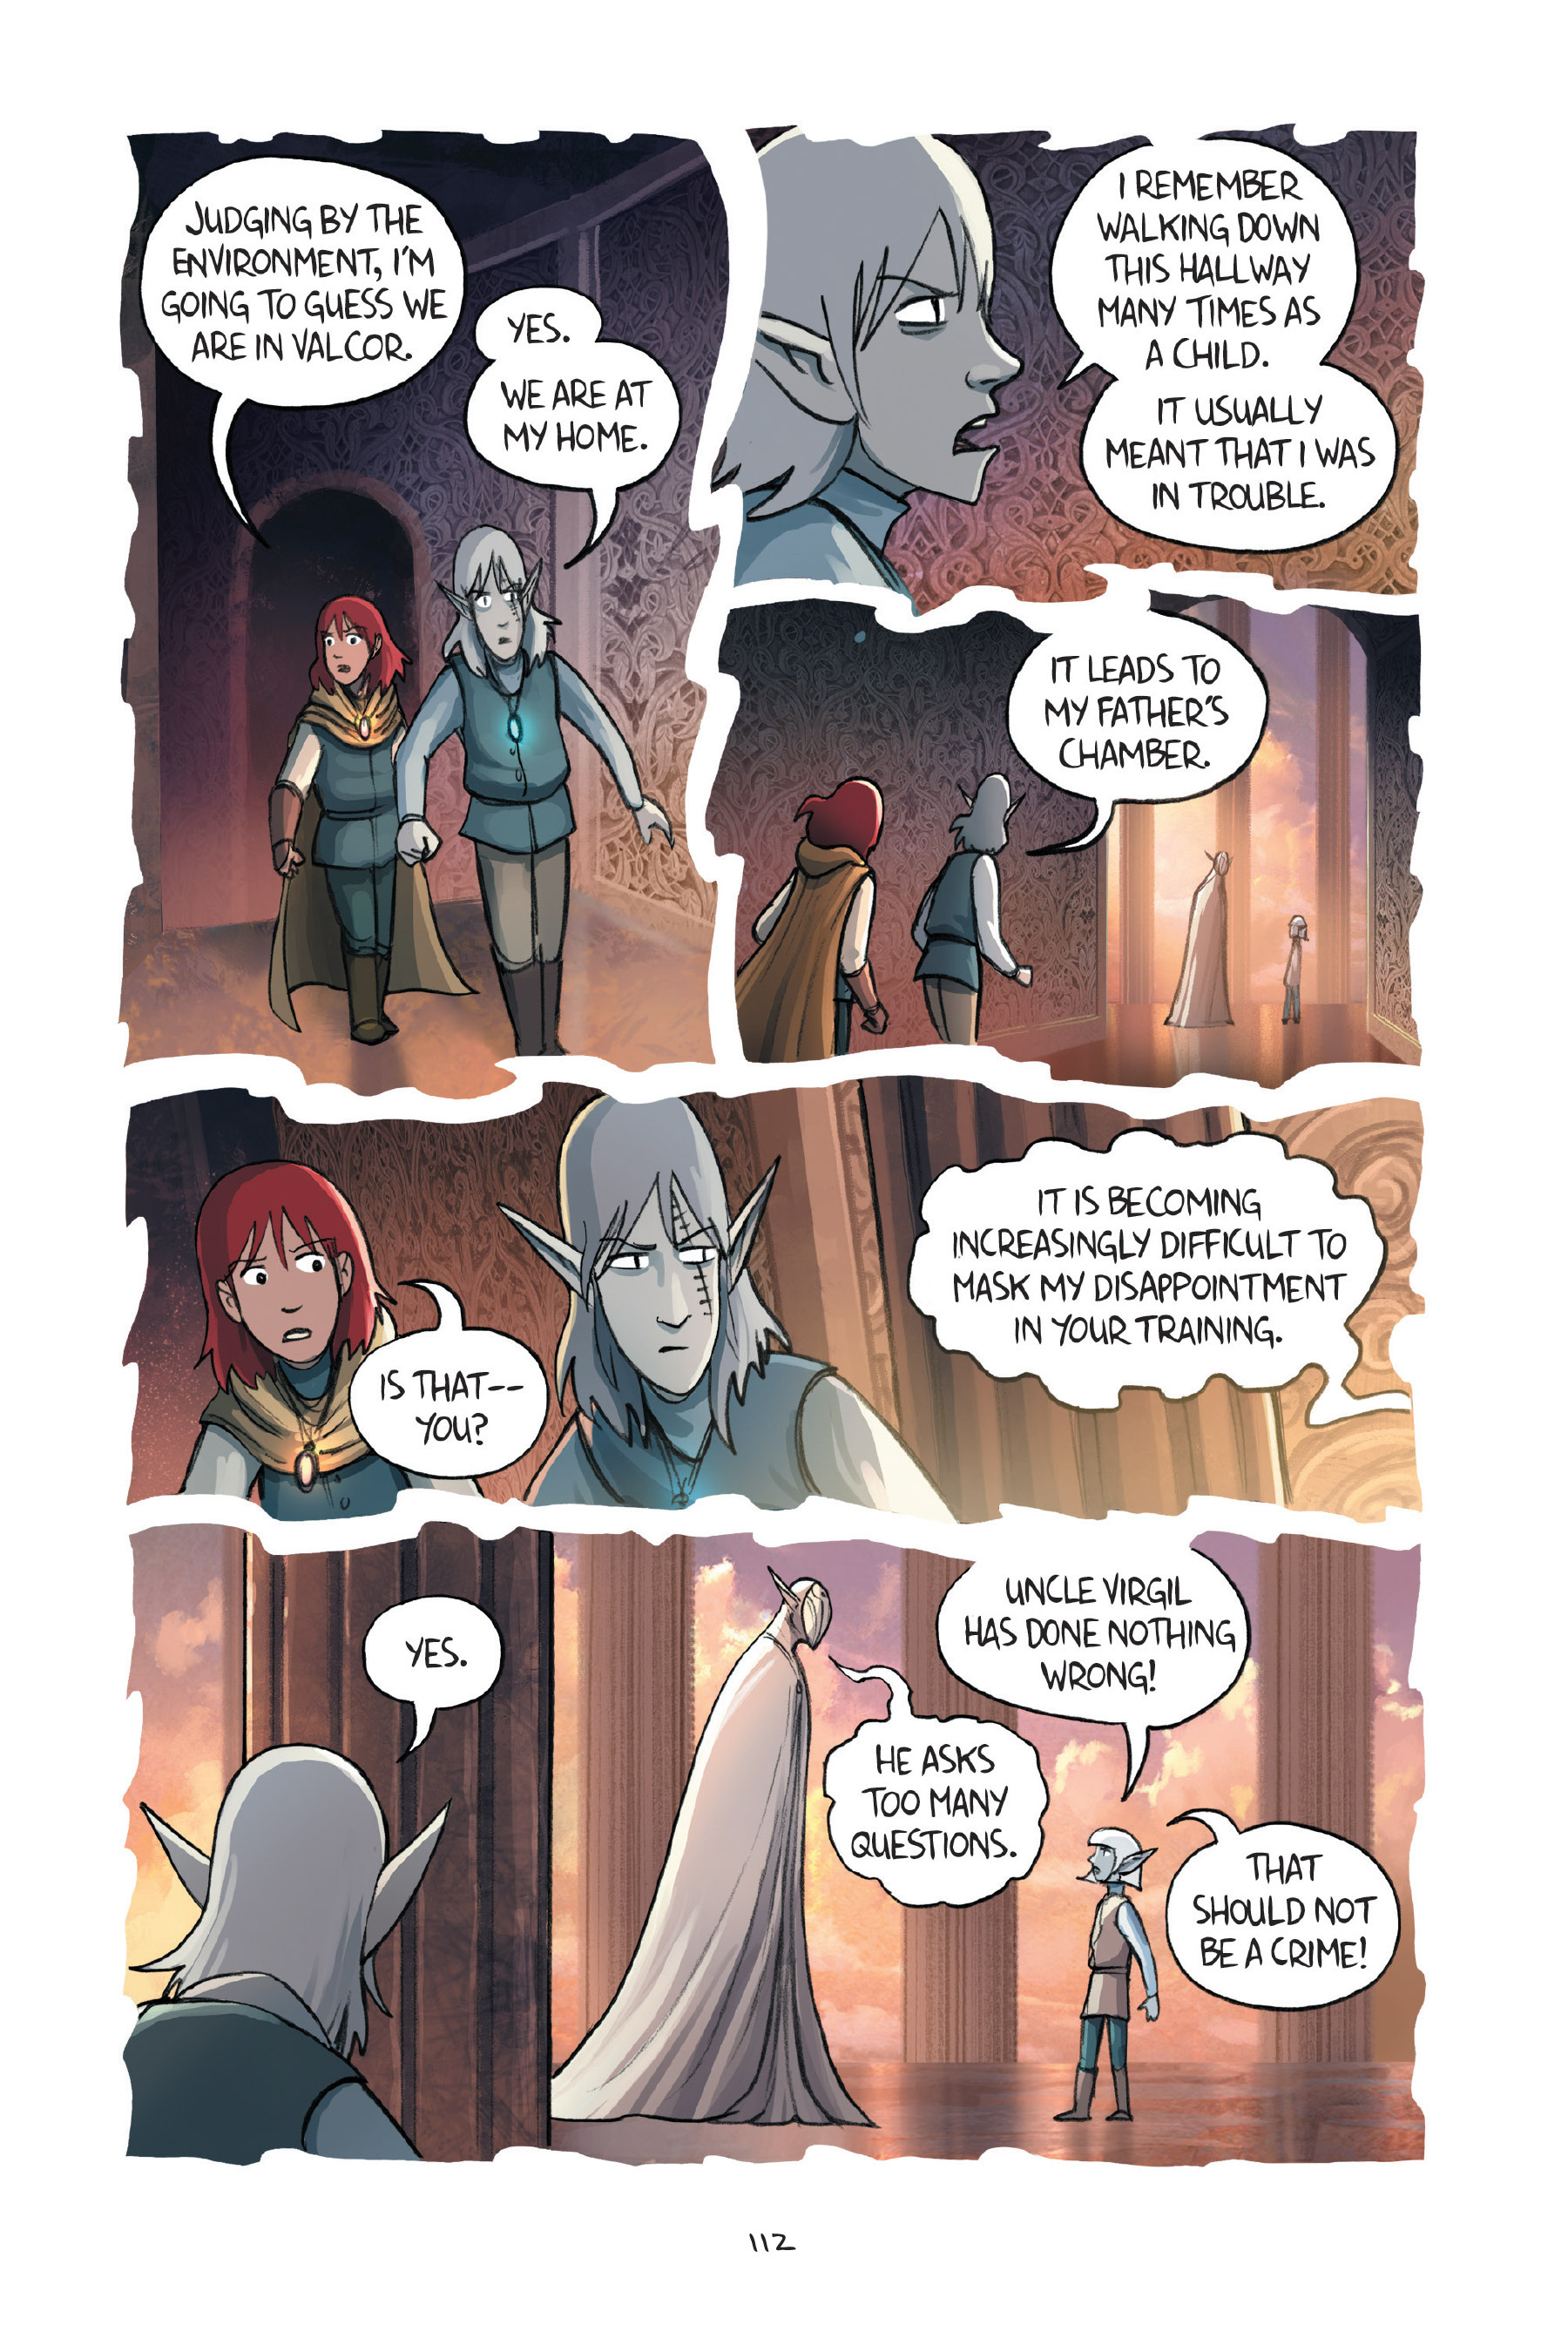 Read online Amulet comic -  Issue #7 - 112